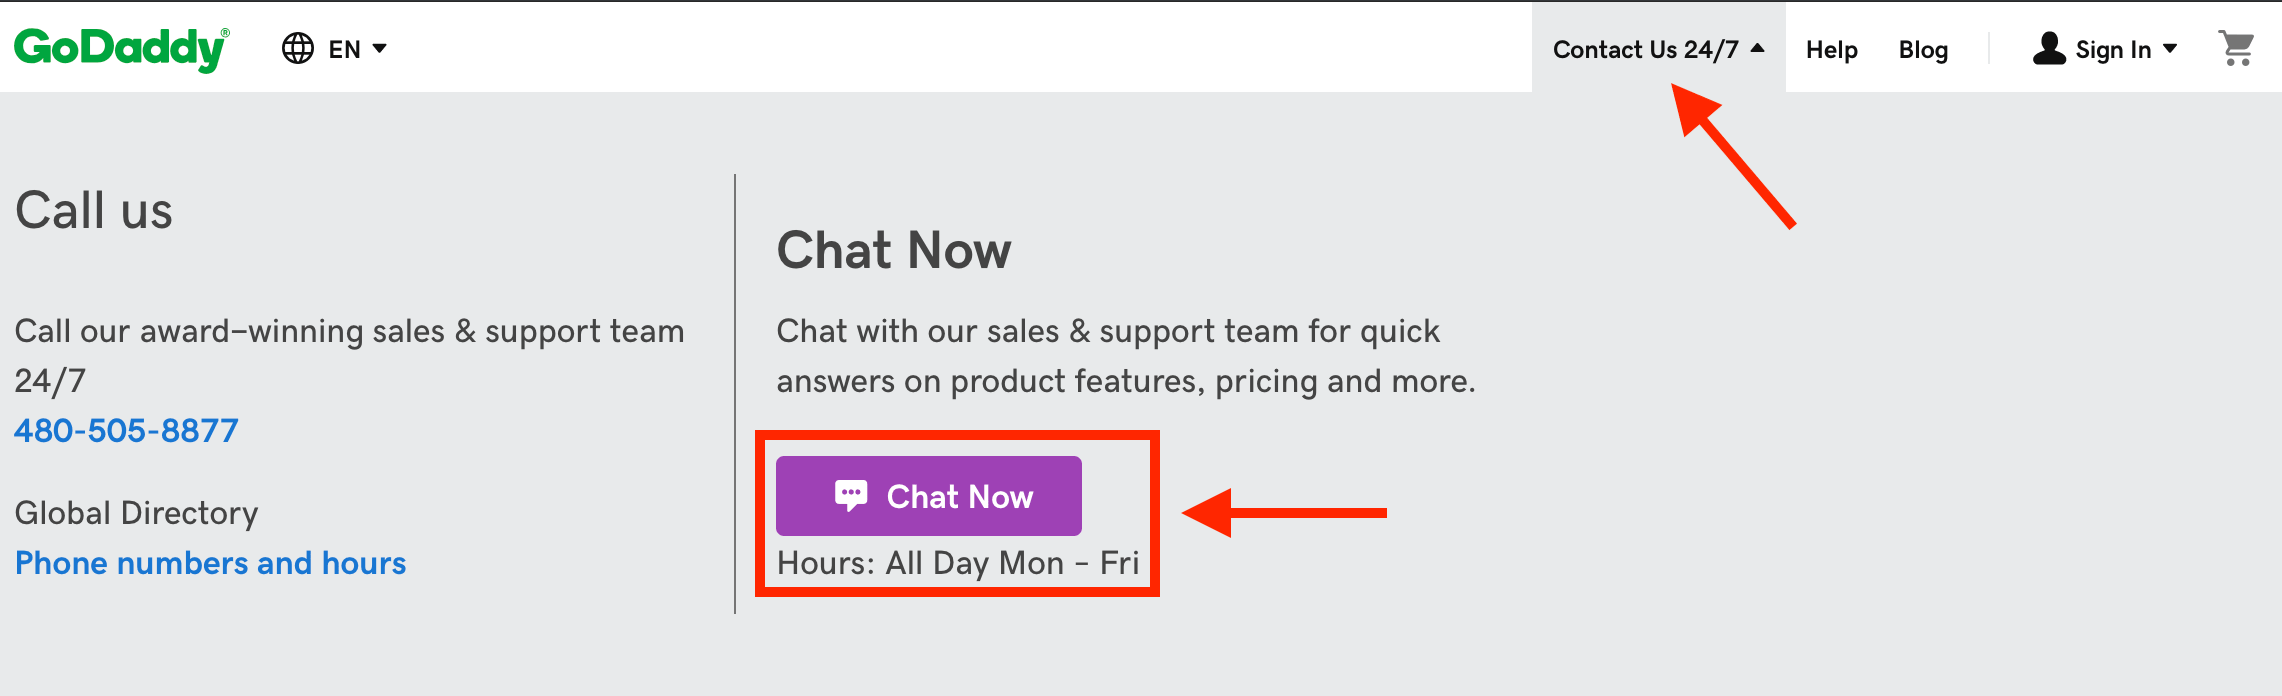 GoDaddy Online Chat